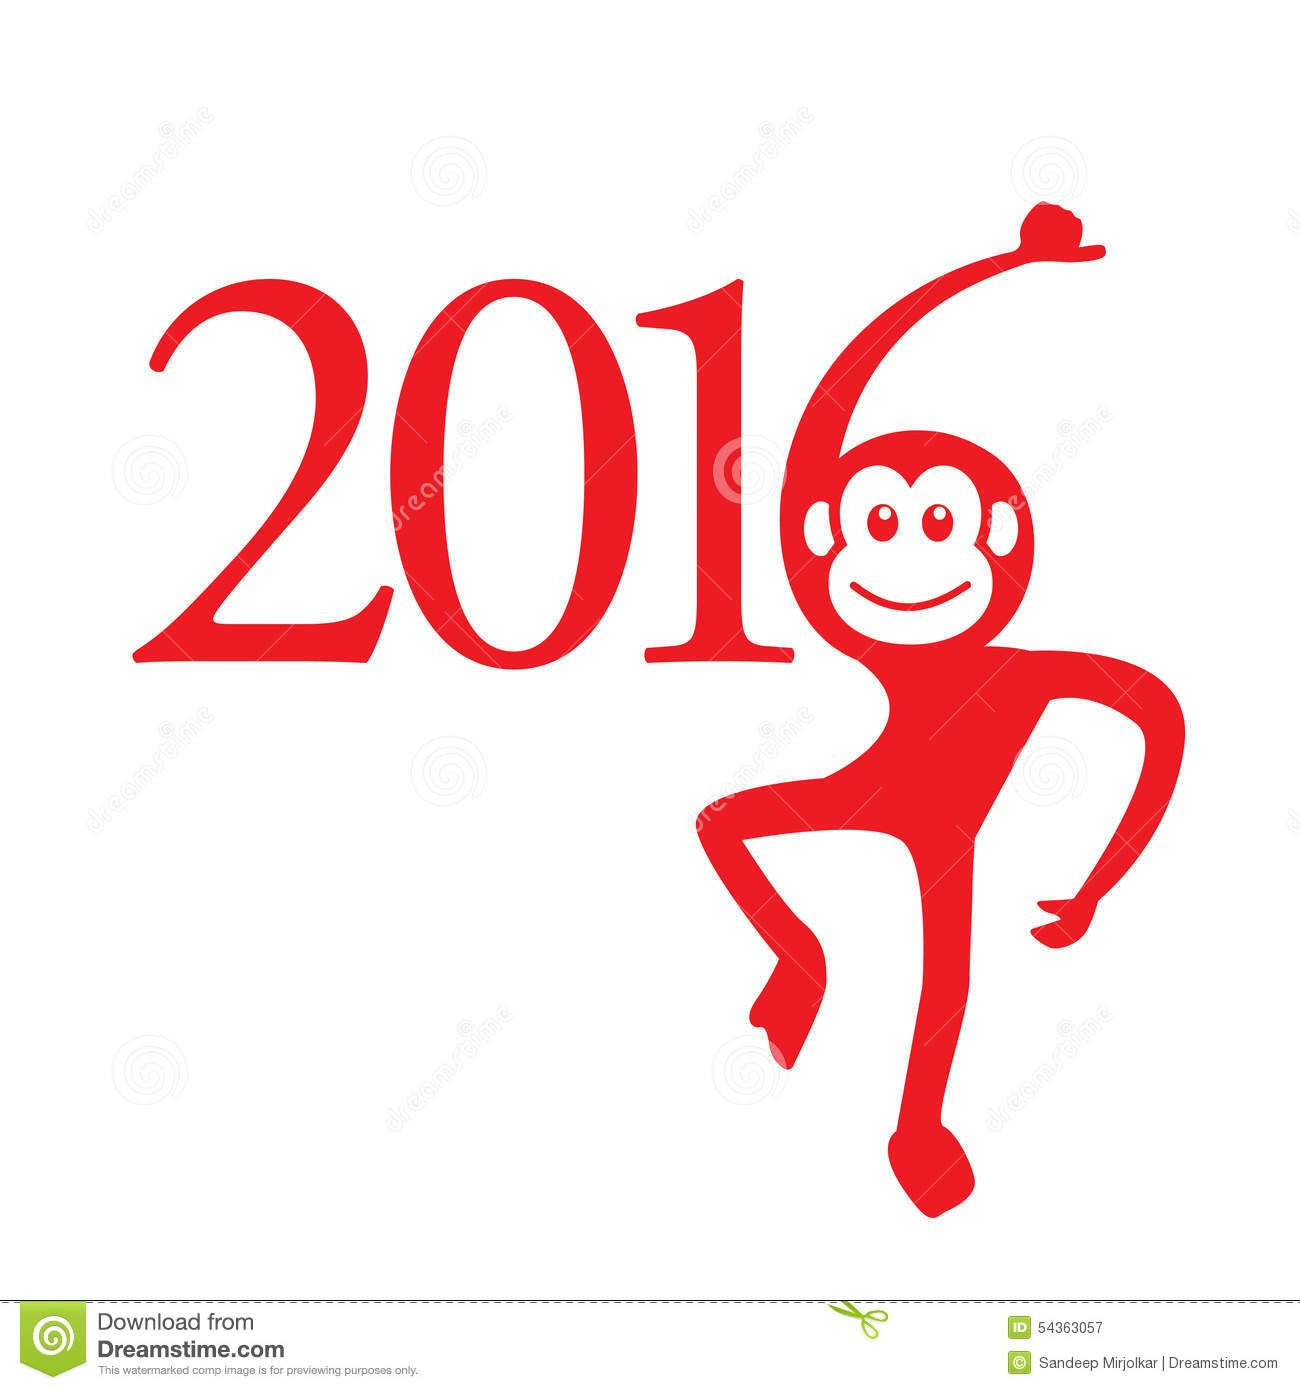 Chinese new year symbol monkey google search inspiration for photo about the year of monkey chinese symbol calendar in red on figures illustration chinese new year 2016 monkey year buycottarizona